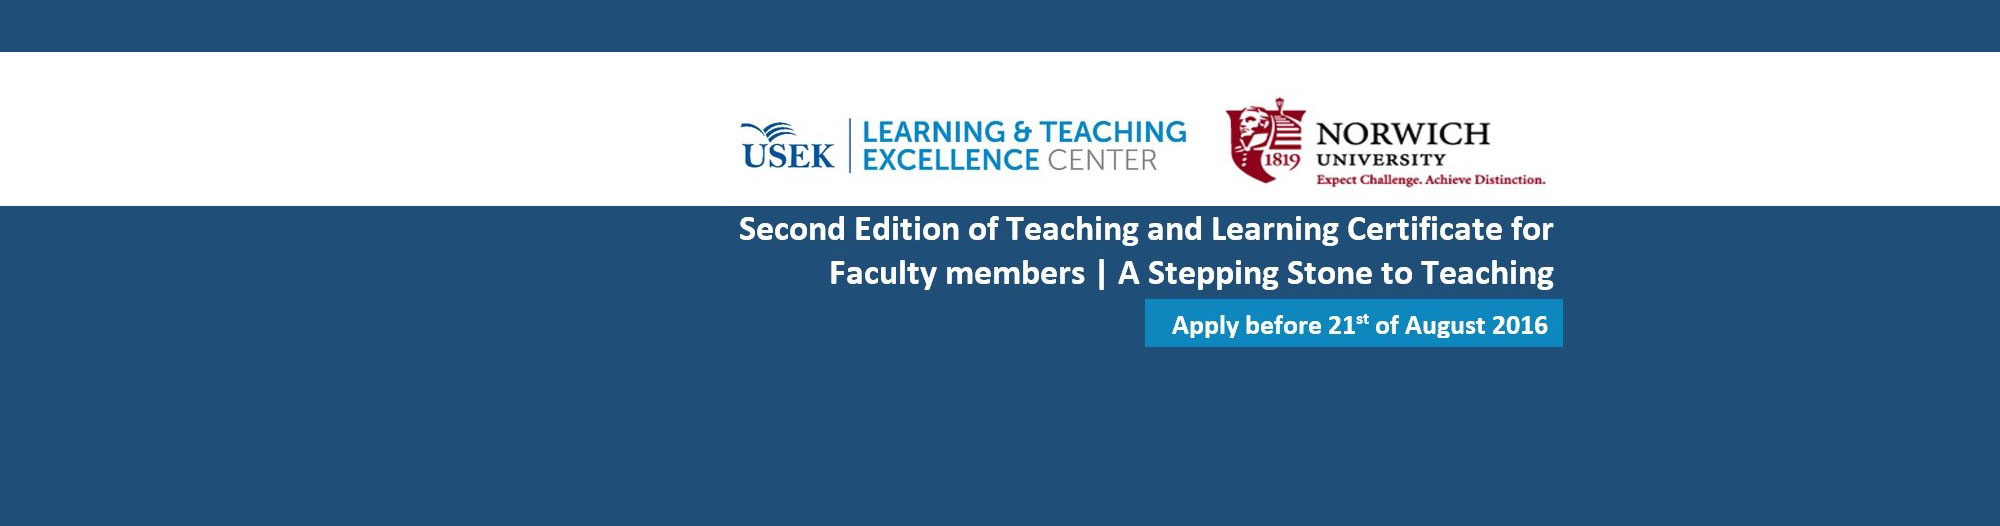 2nd Edition of Teaching and Learning Certificate for Faculty members | A Stepping Stone to Teaching